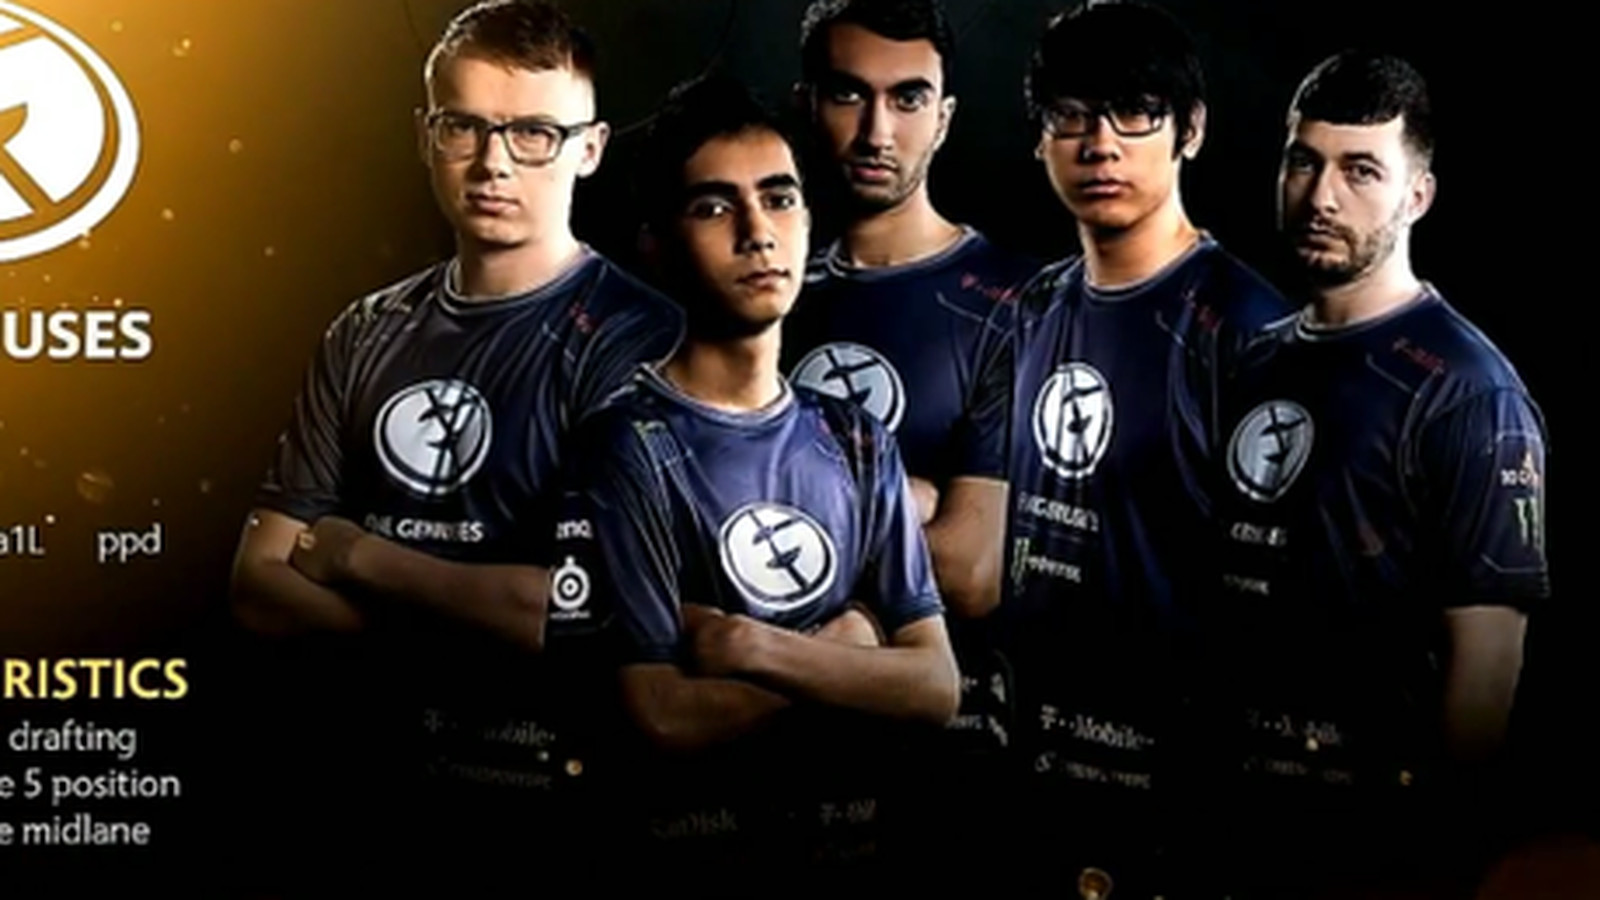 Evil Geniuses Makes The International Dota 2 Championships